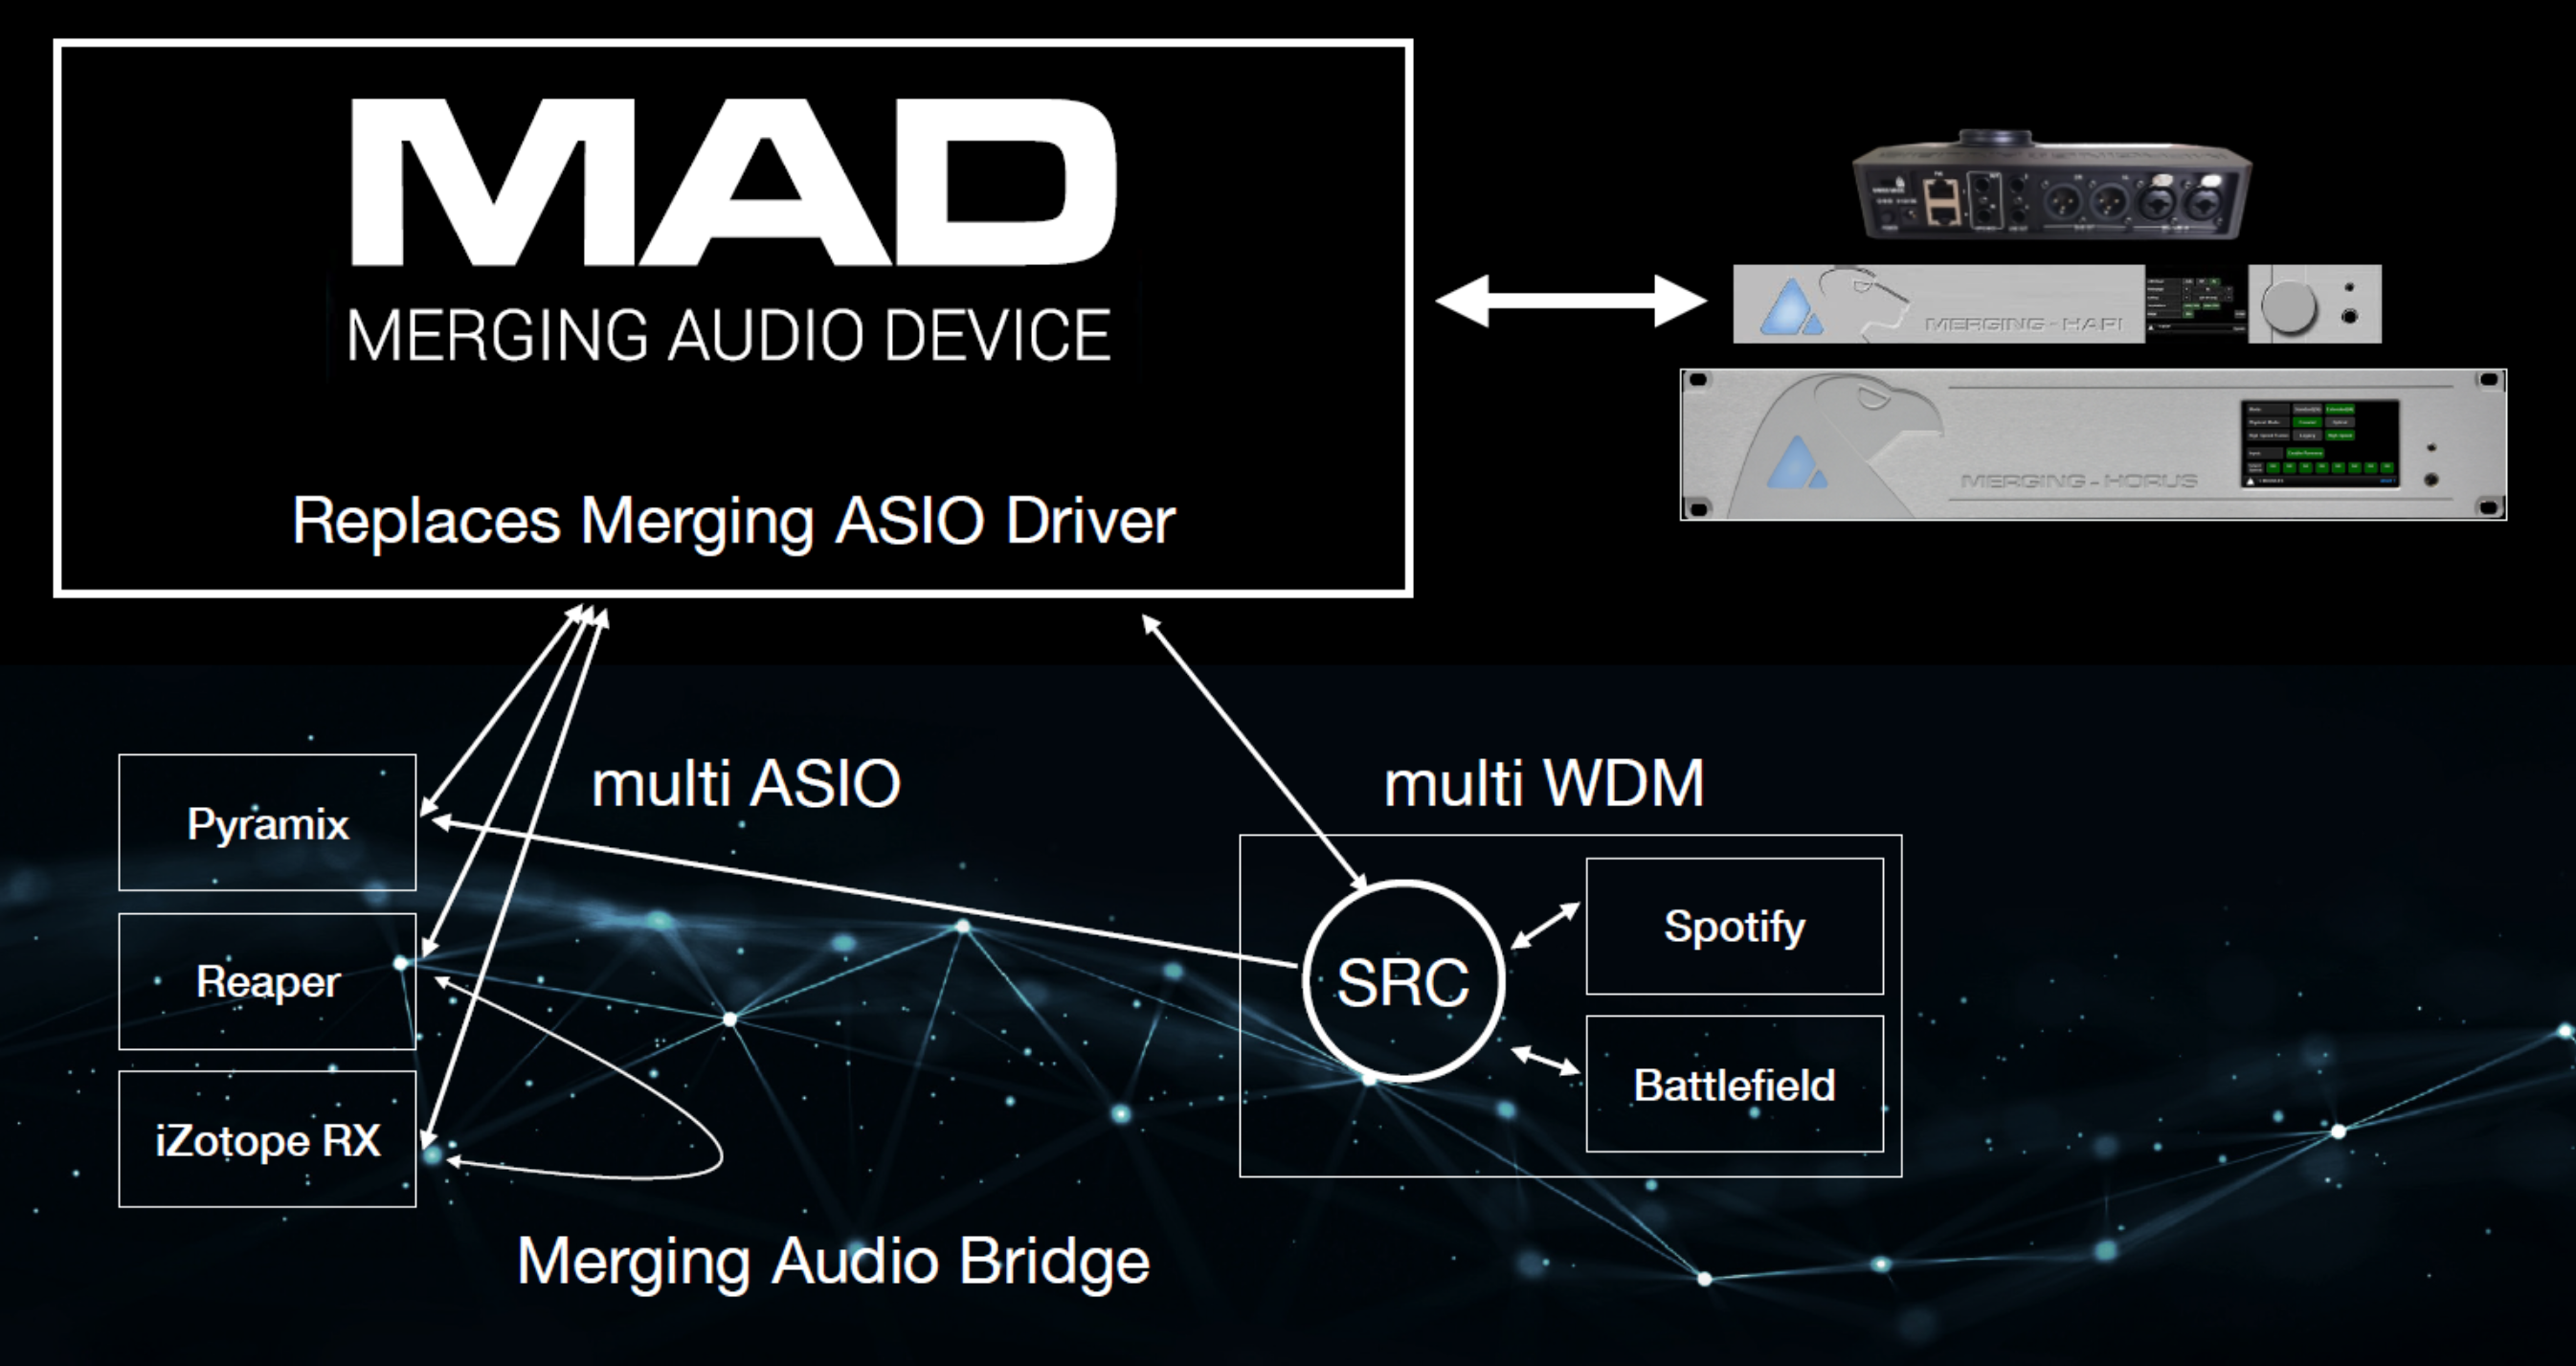 MAD - Merging Audio Device - Diagram